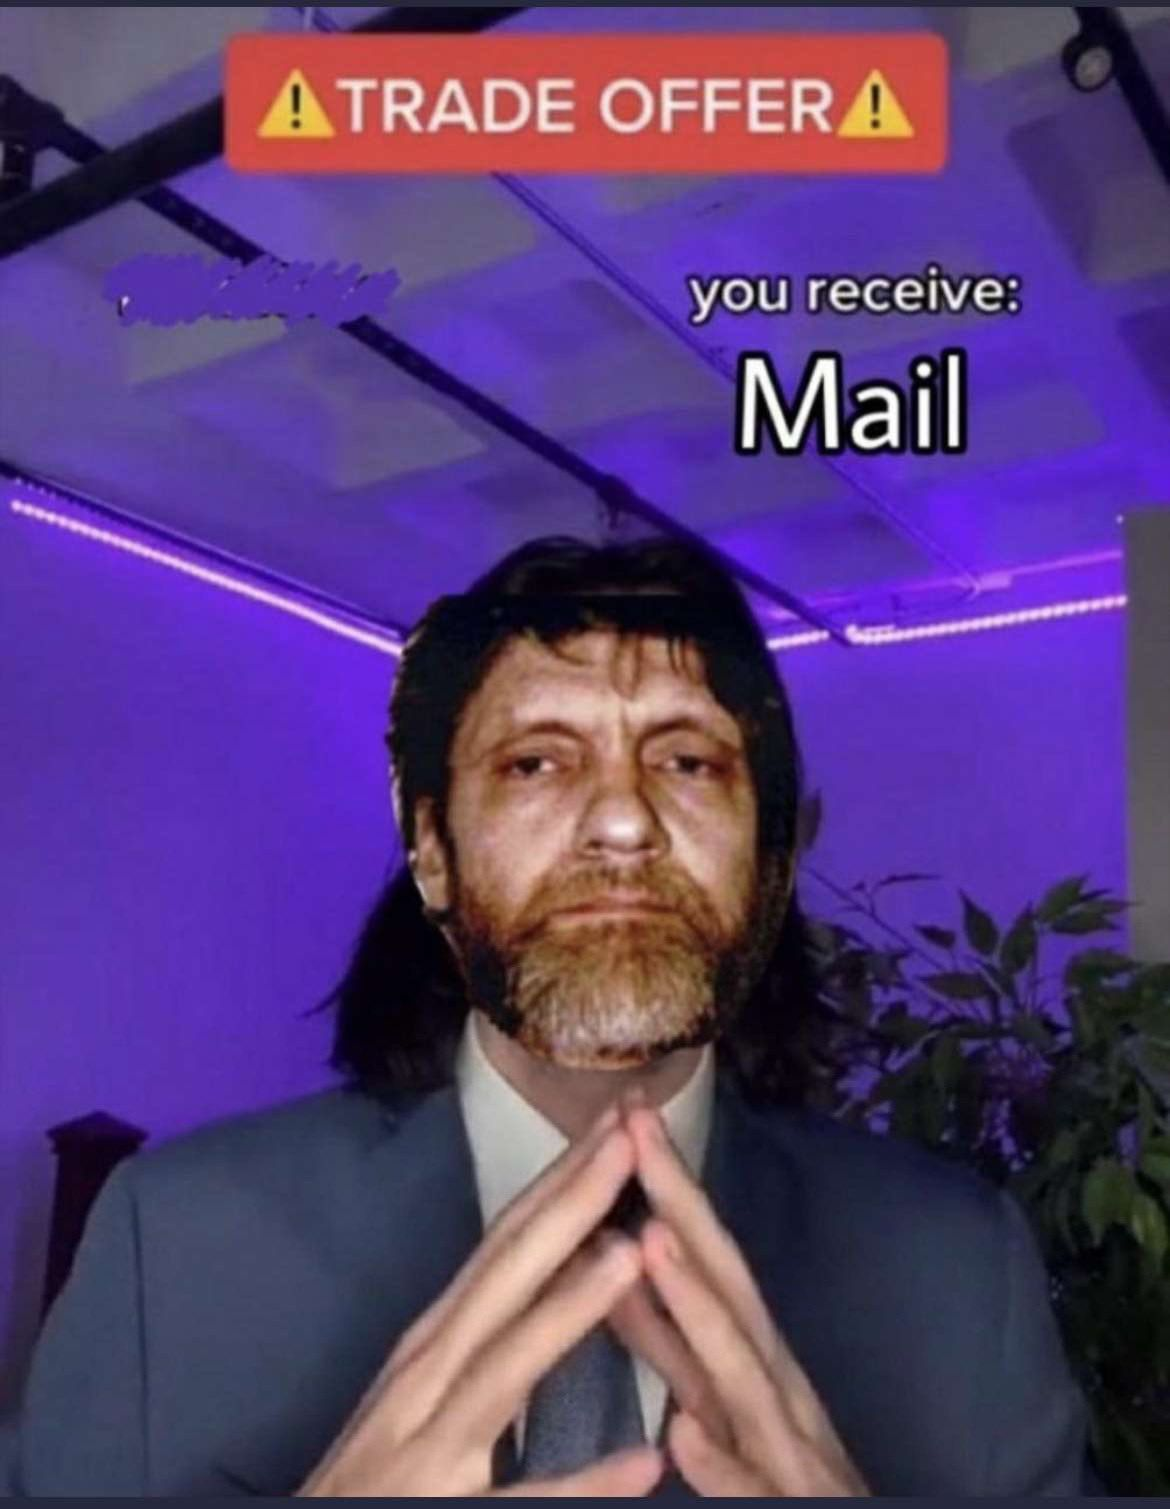 Enough trade offers, time to open your mail.